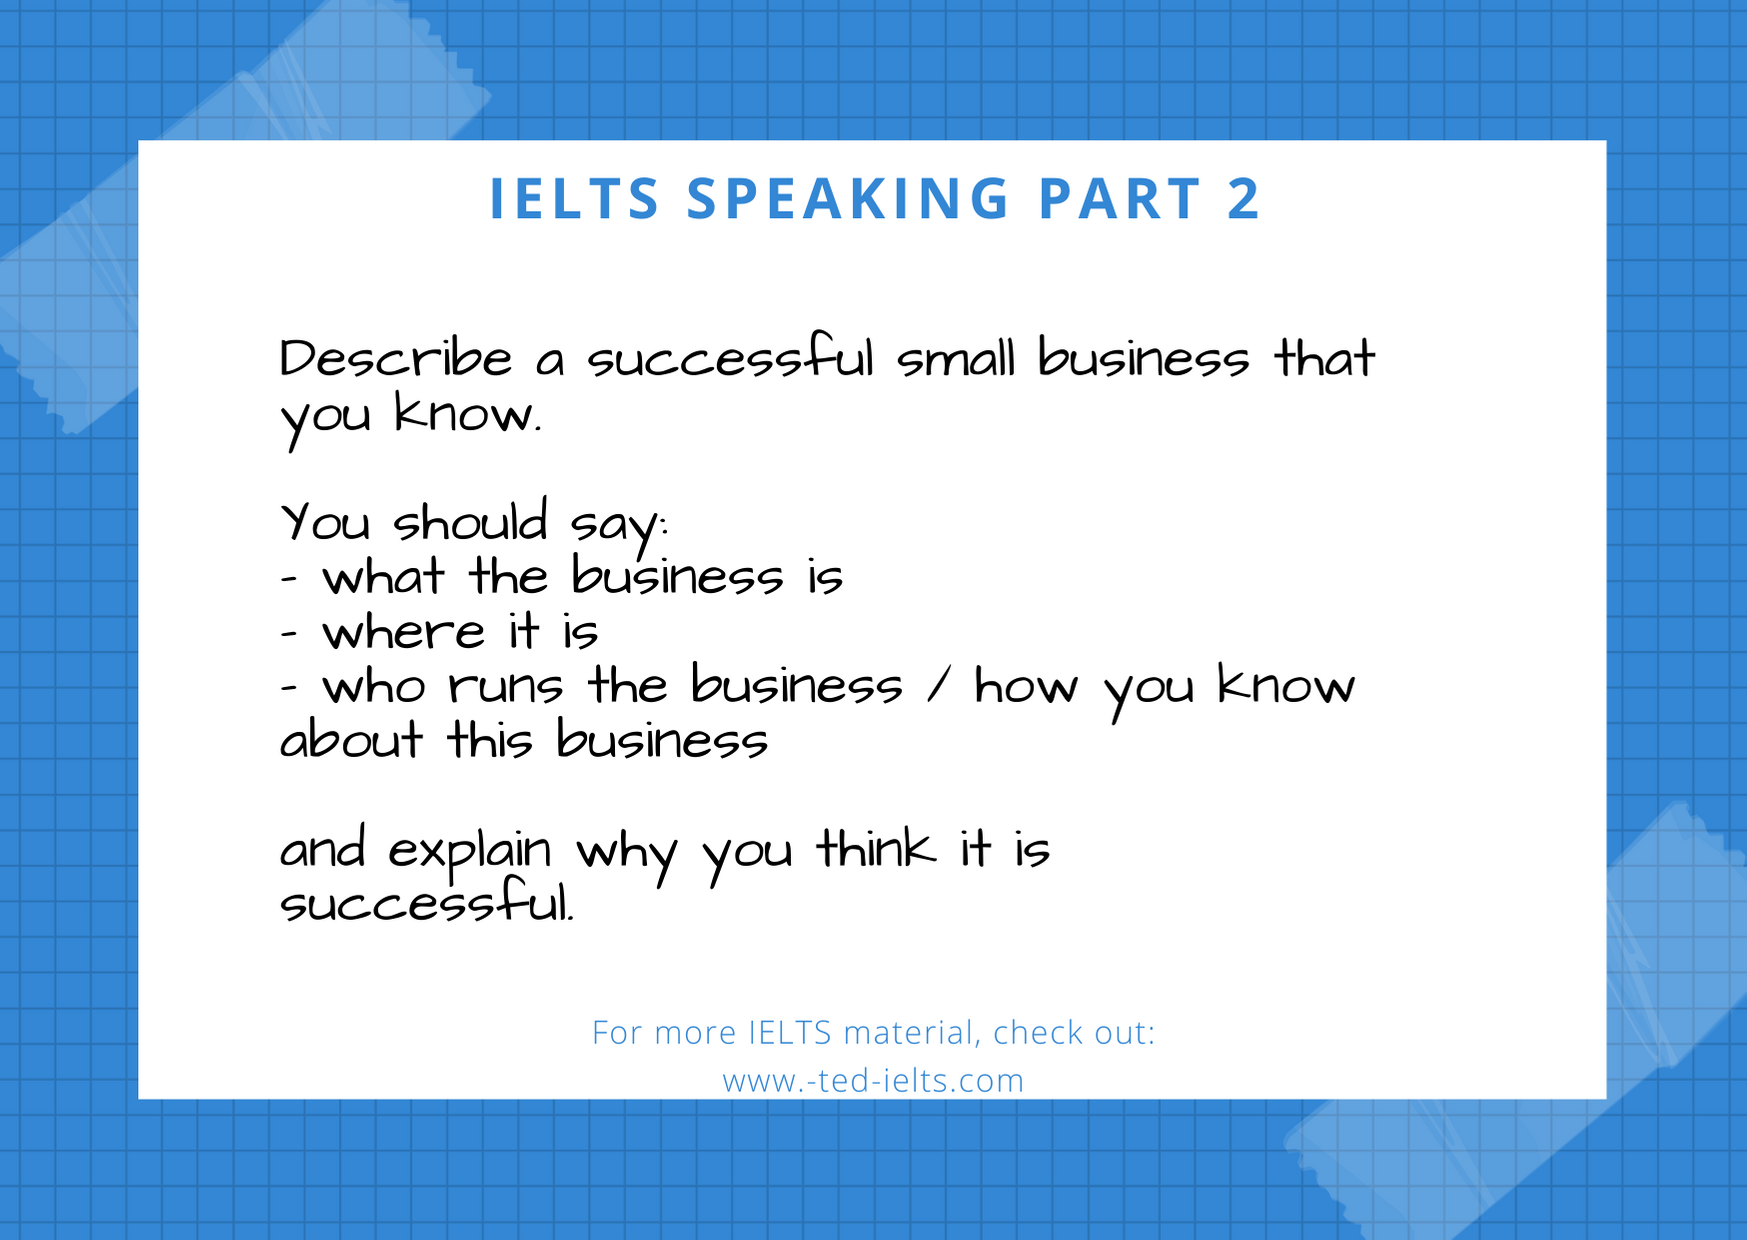 Describe a Business [IELTS Speaking Part 4] - TED IELTS